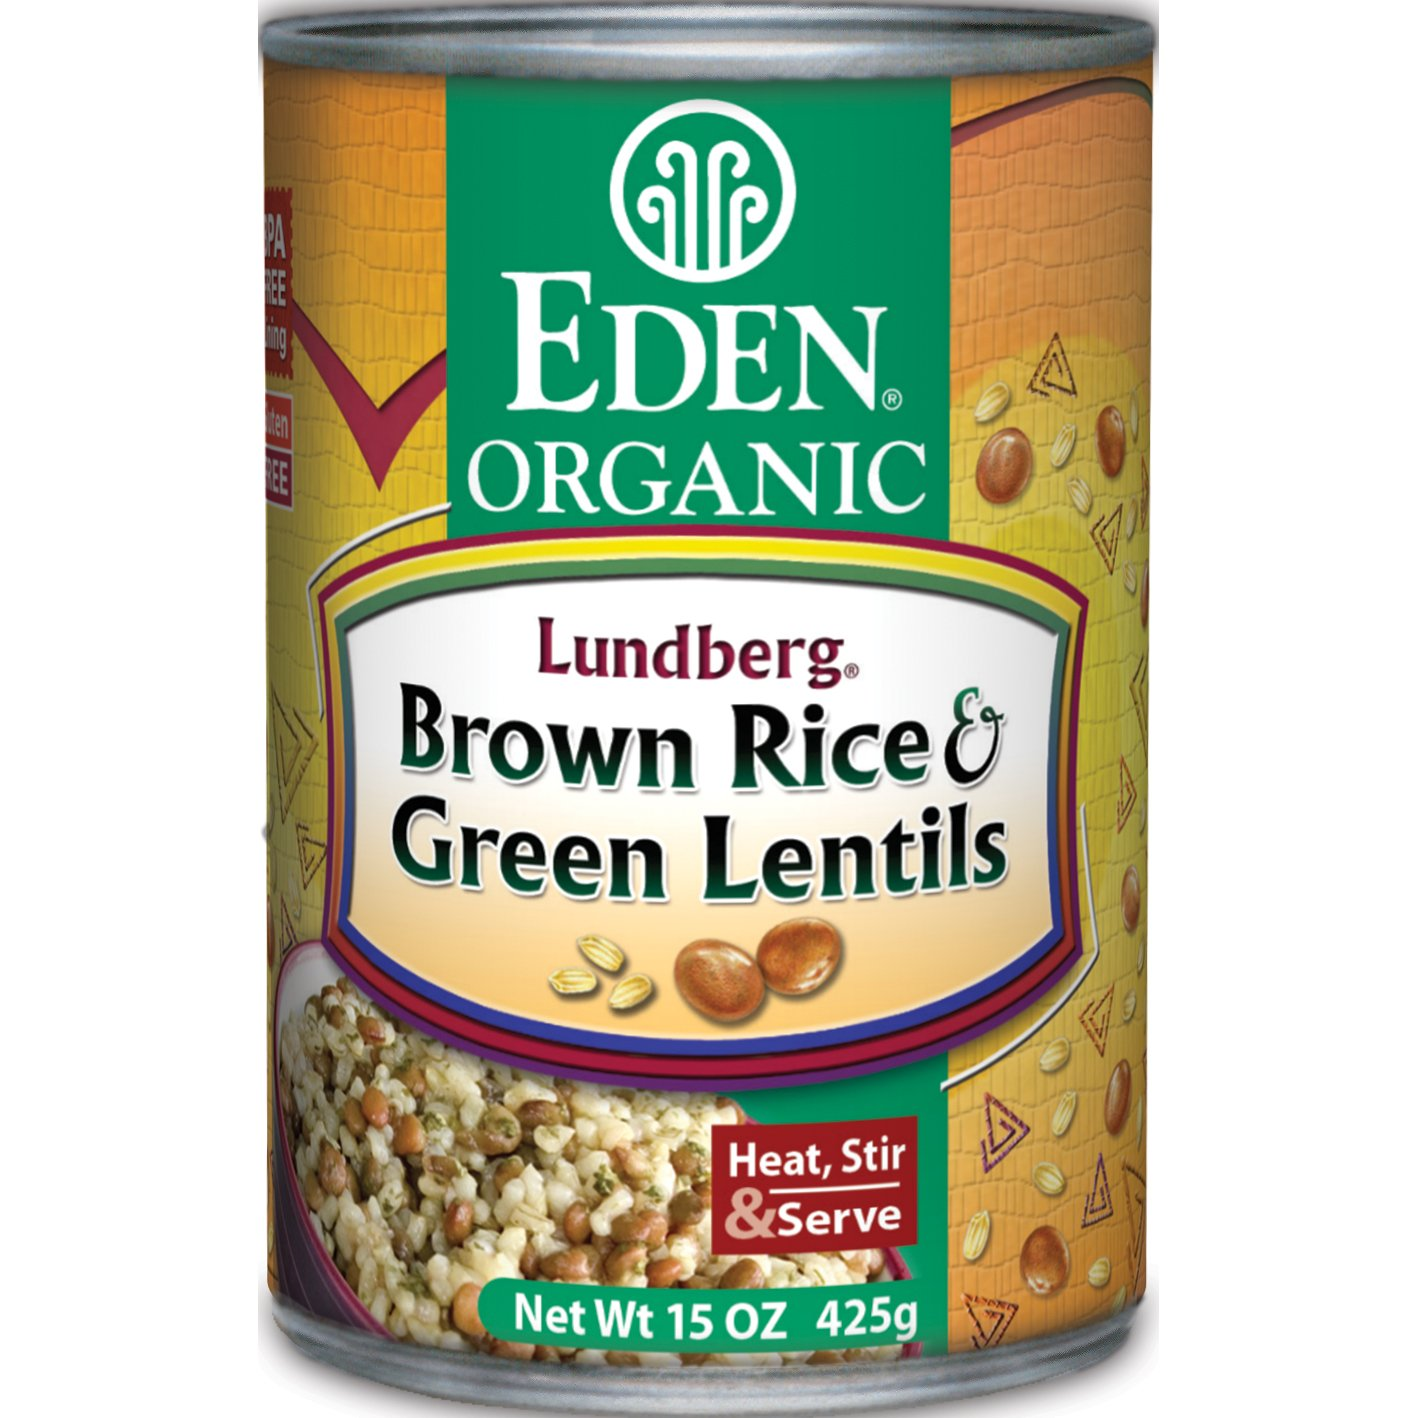 Eden Organic Brown Rice & Green Lentils, 15-Ounce Cans (Pack of 12)